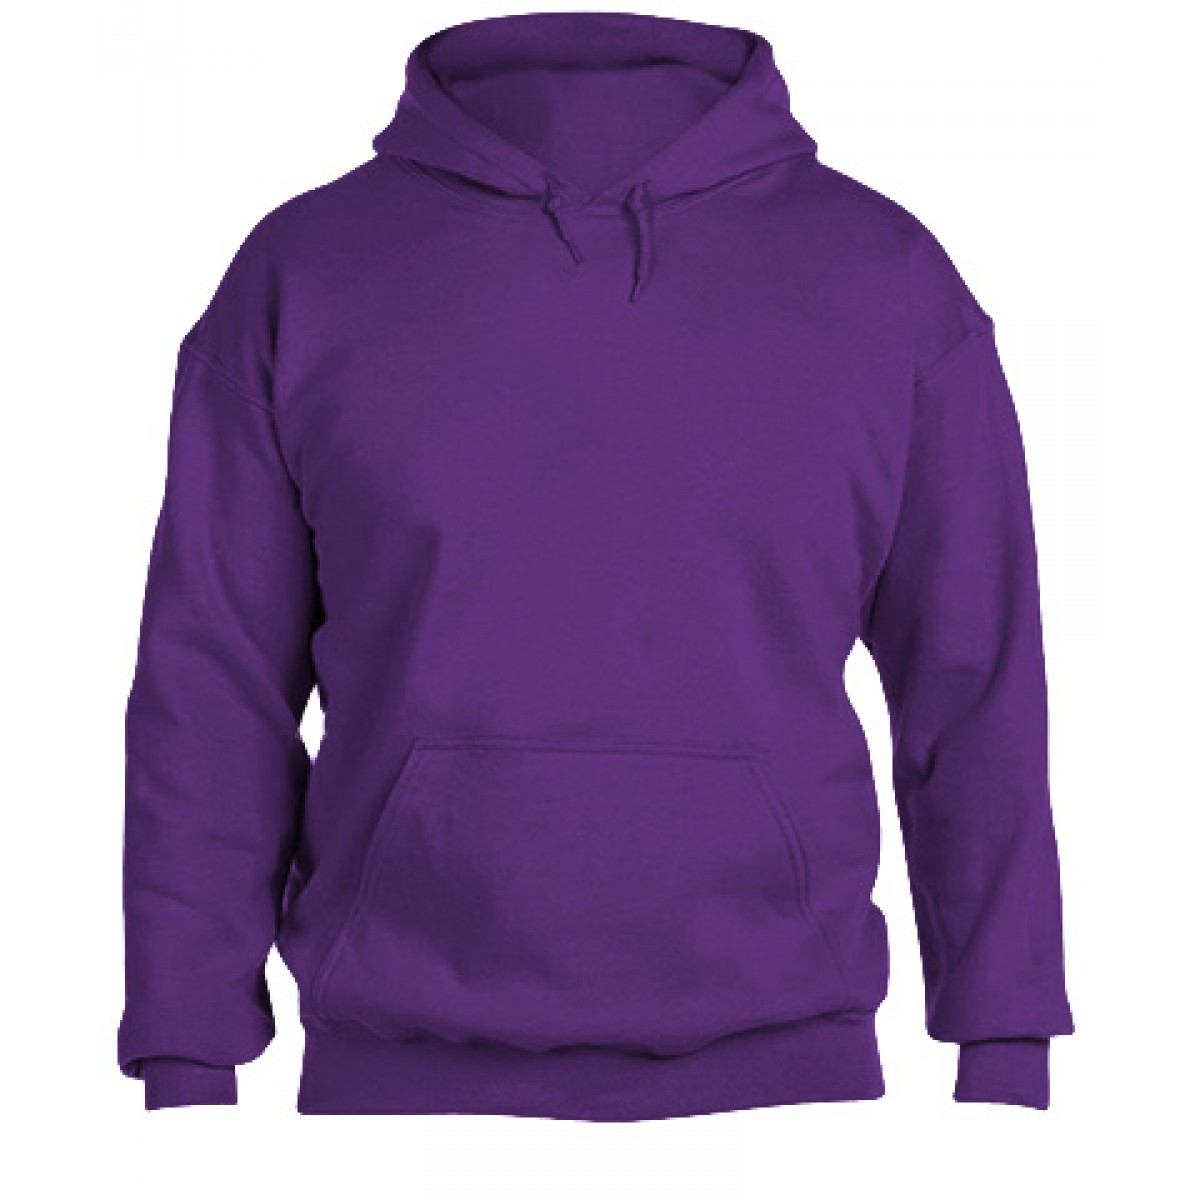 Hooded Sweatshirt 50/50 Heavy Blend -Purple-XL